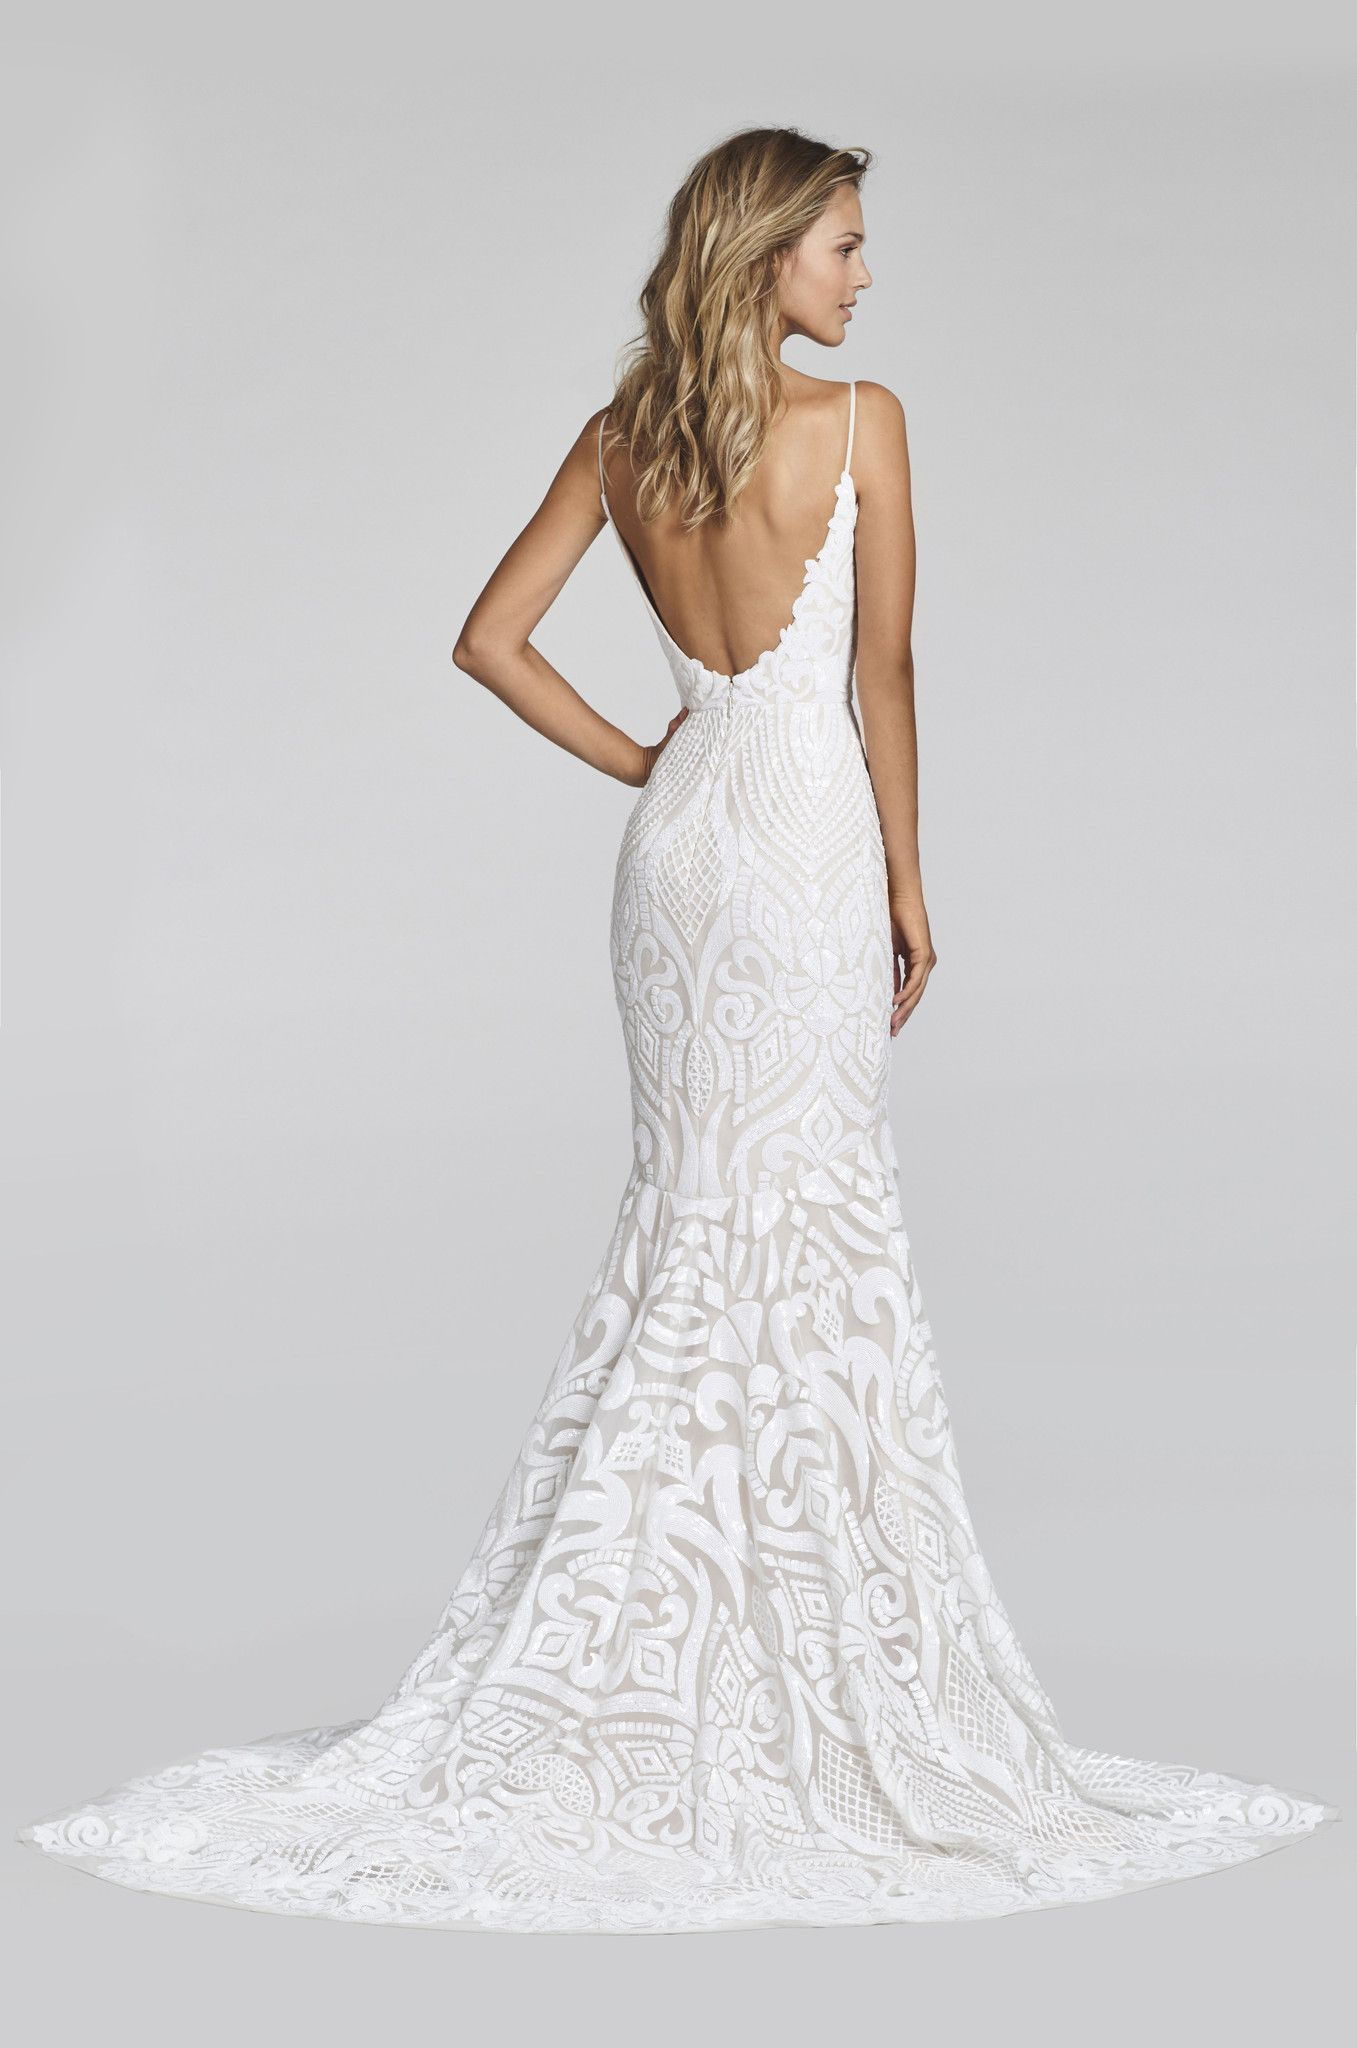 Wedding dress with bow on back  Ivory Marrakesh beaded fit to flare bridal gown sweetheart neckline